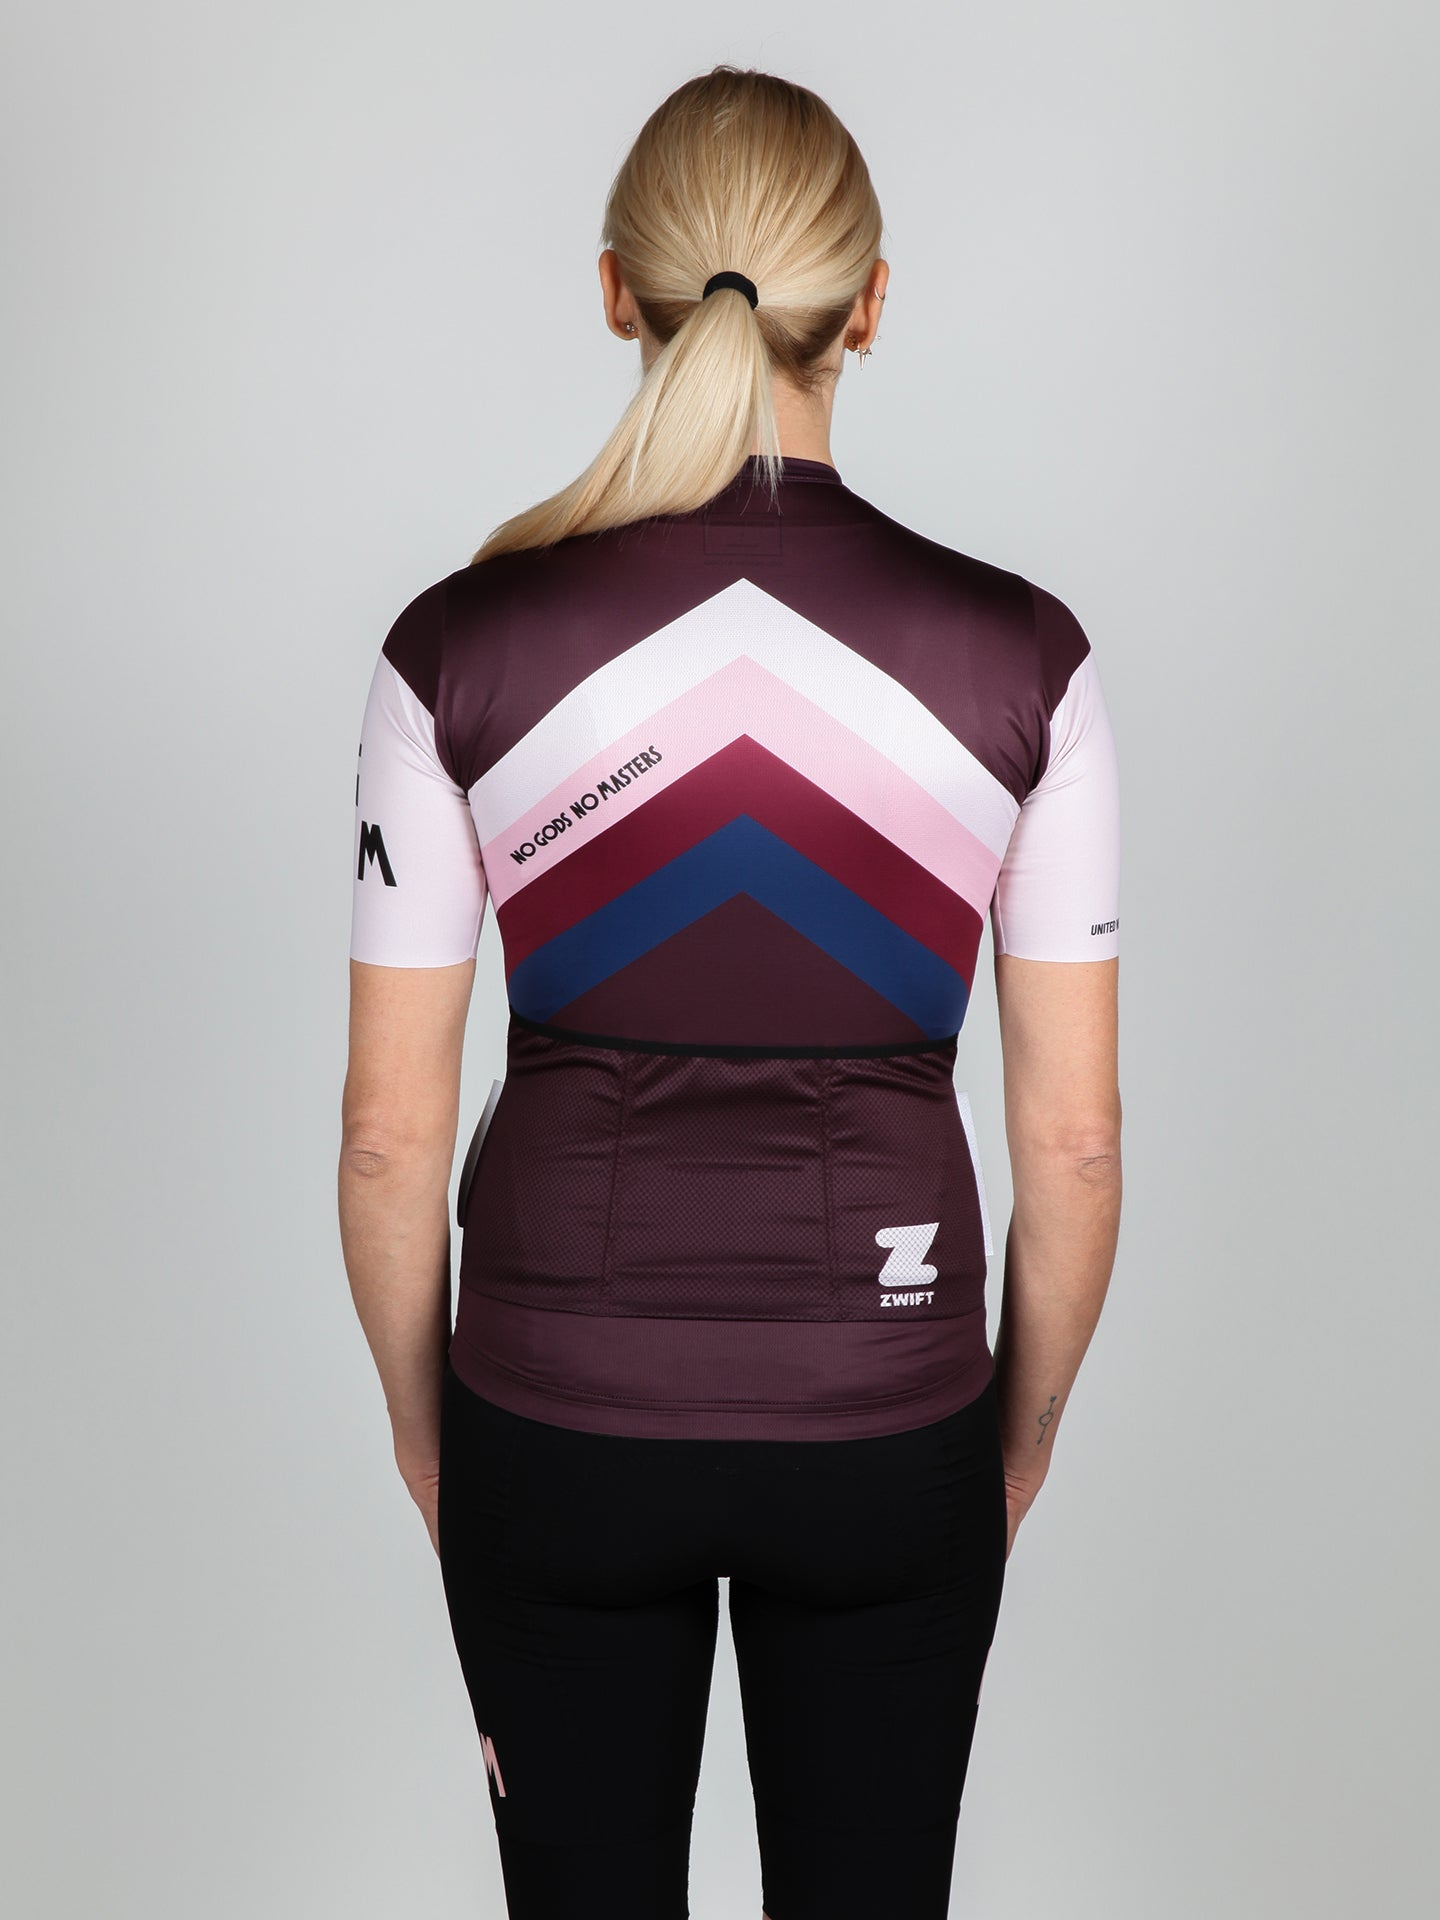 NGNM Jersey cycling ZWIFT aubergine back